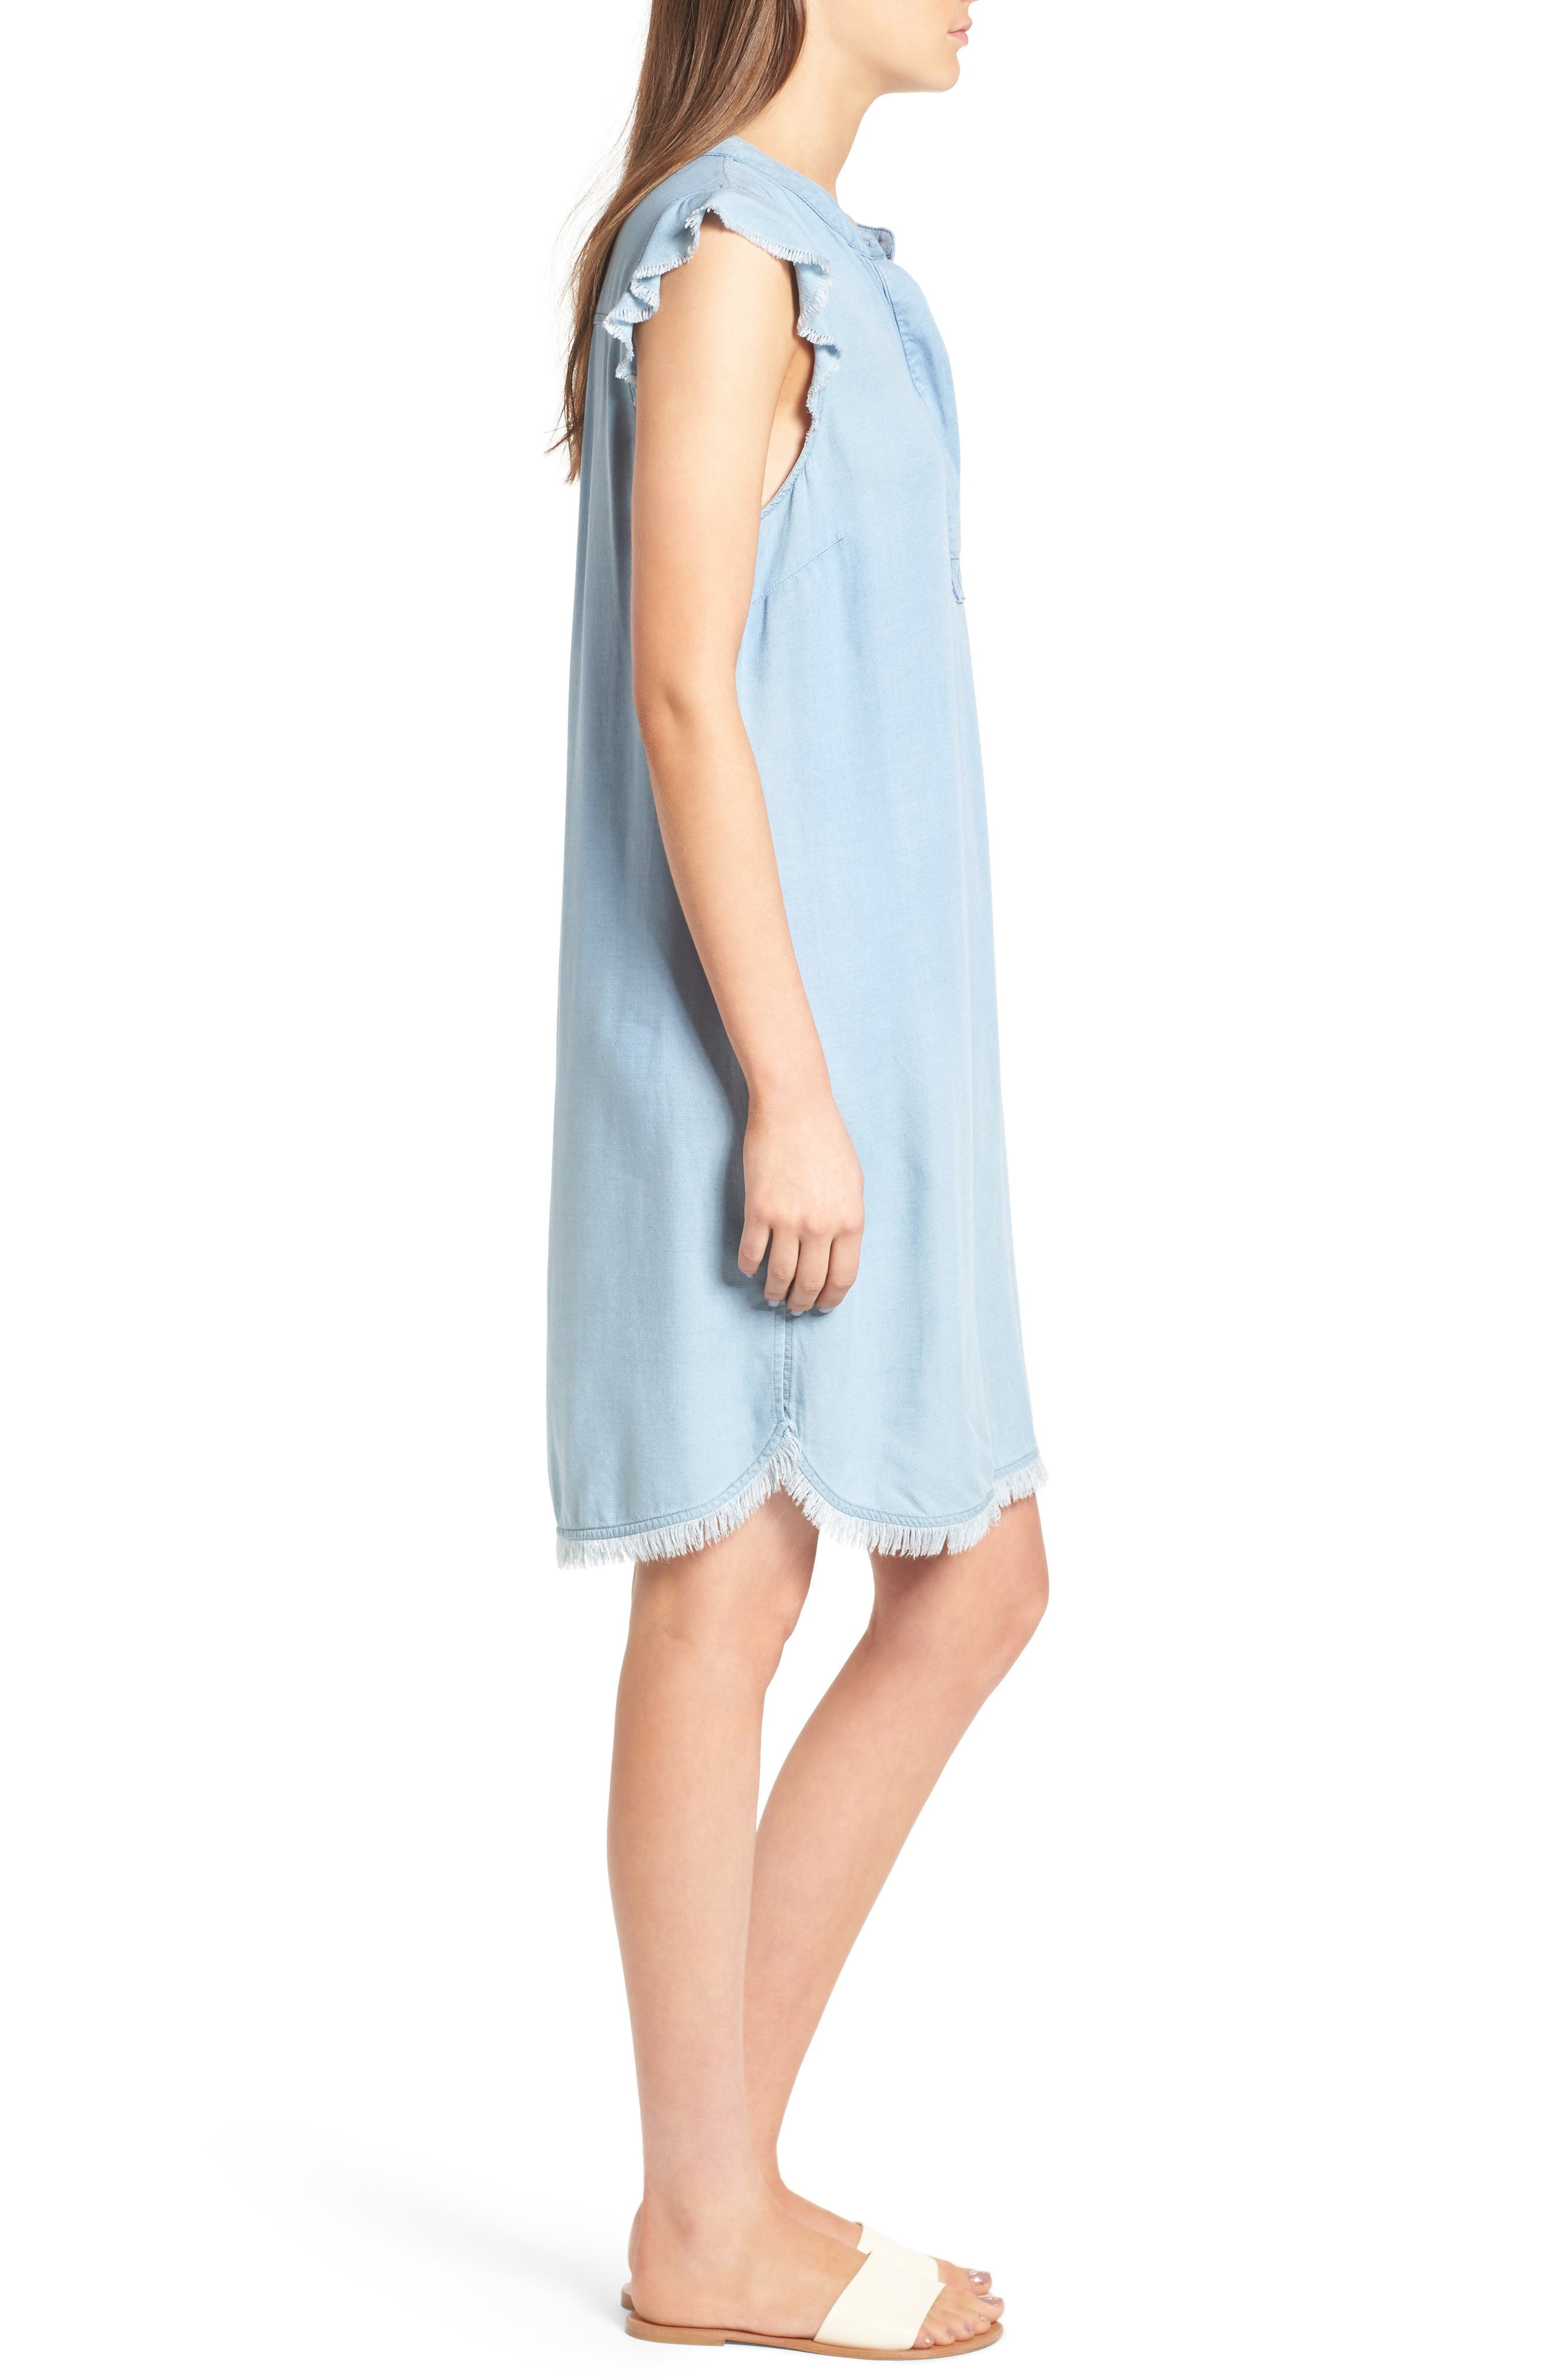 SPLENDID, Chambray Shift Dress, Alternate thumbnail 3, color, 400